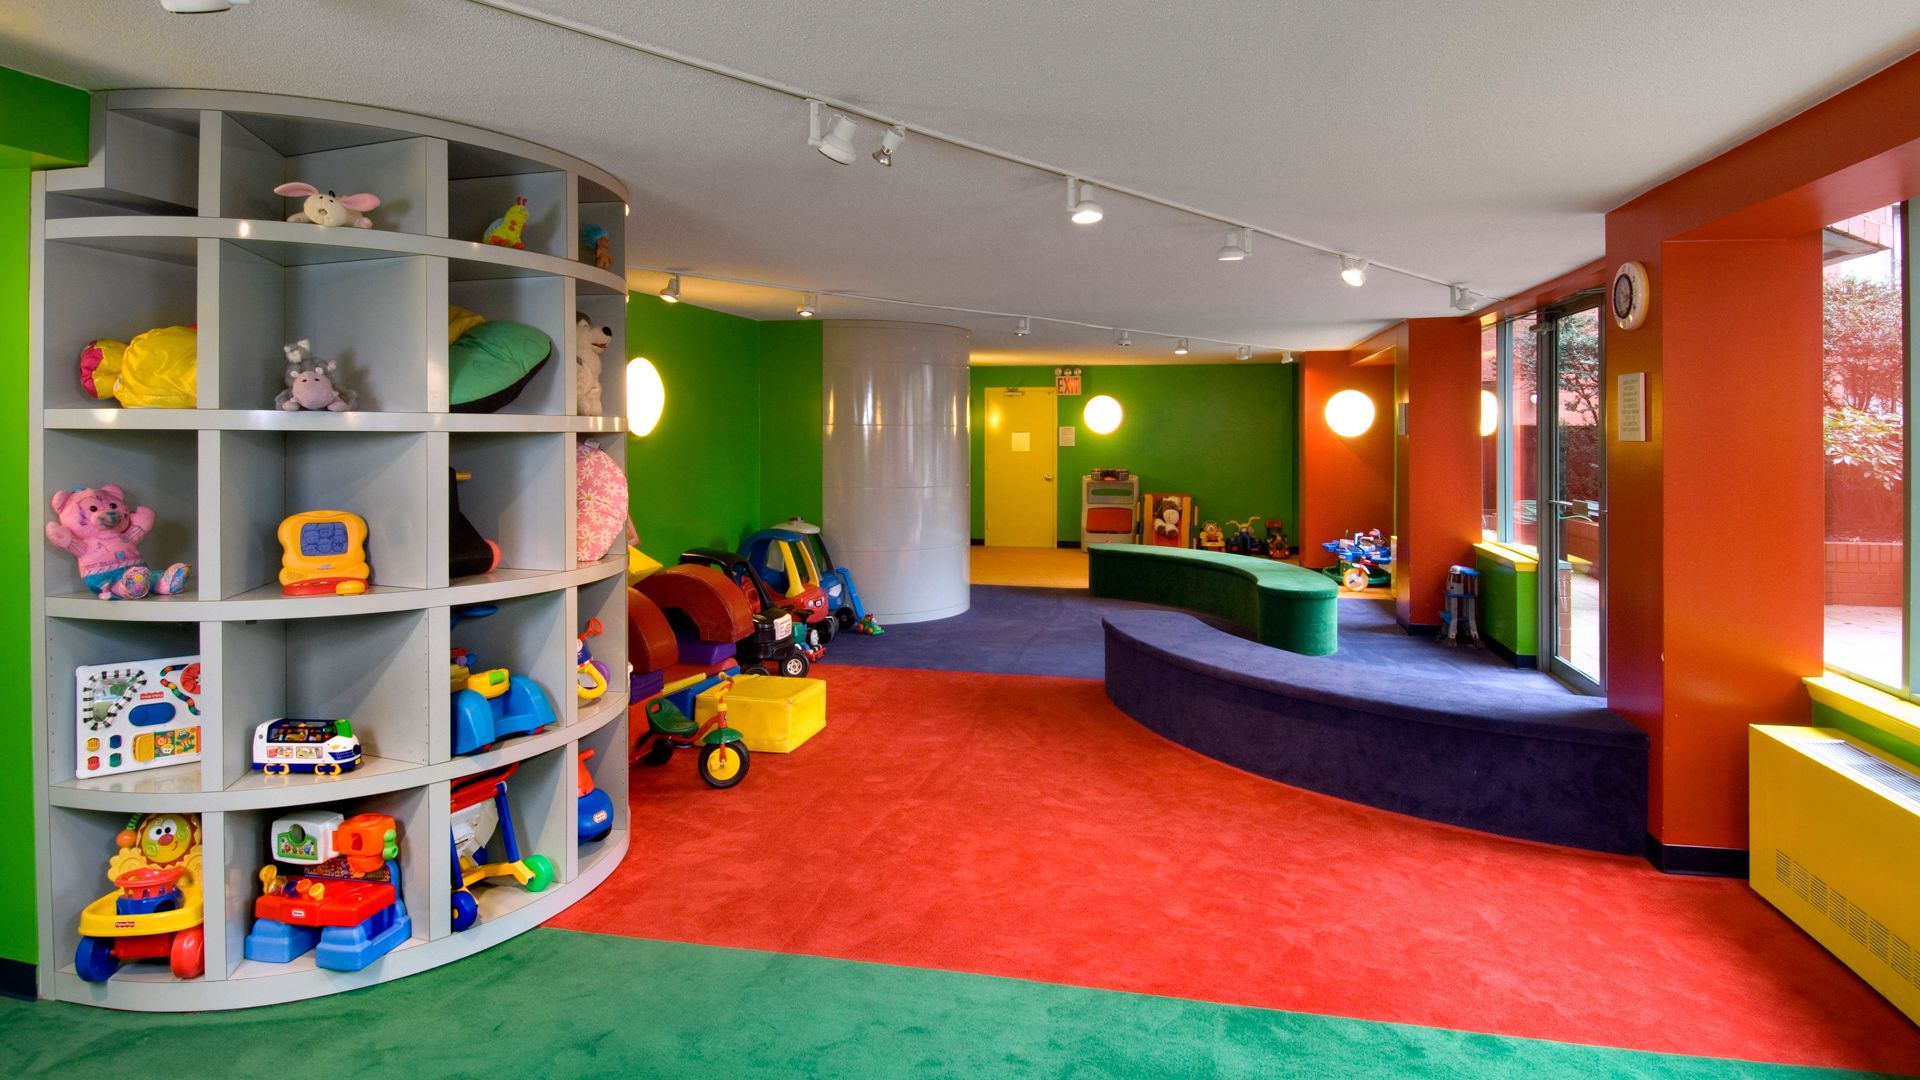 West 96th Apartments - Children's Playroom